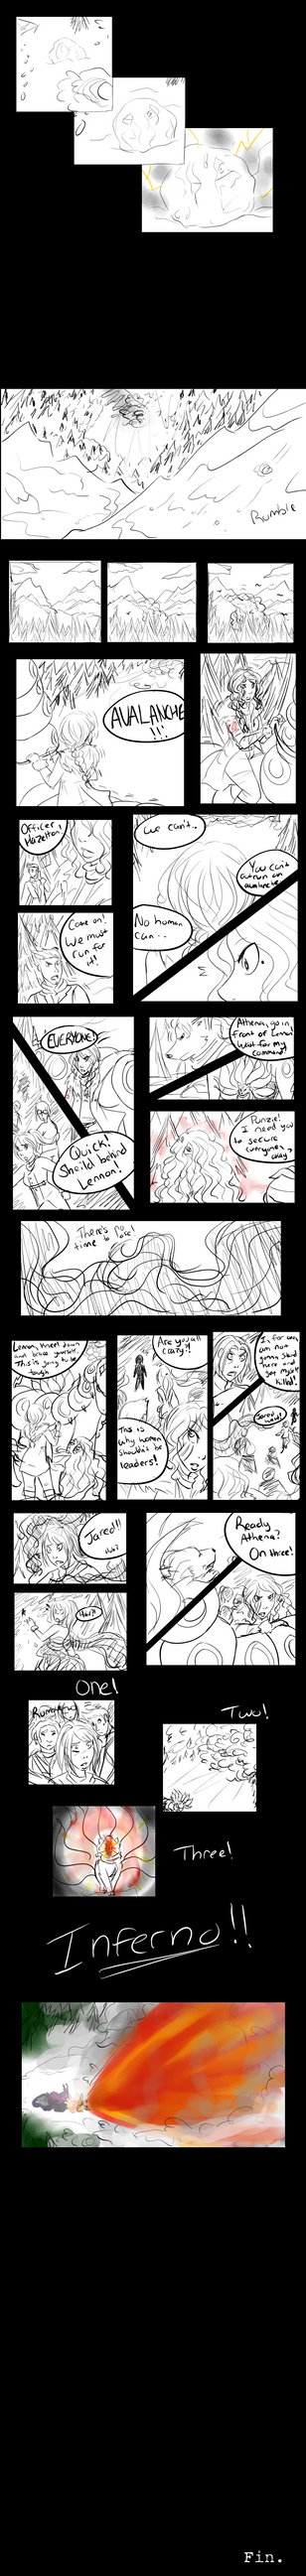 ER - R5 - DTKA 153 - Page three by Satu---MWAH